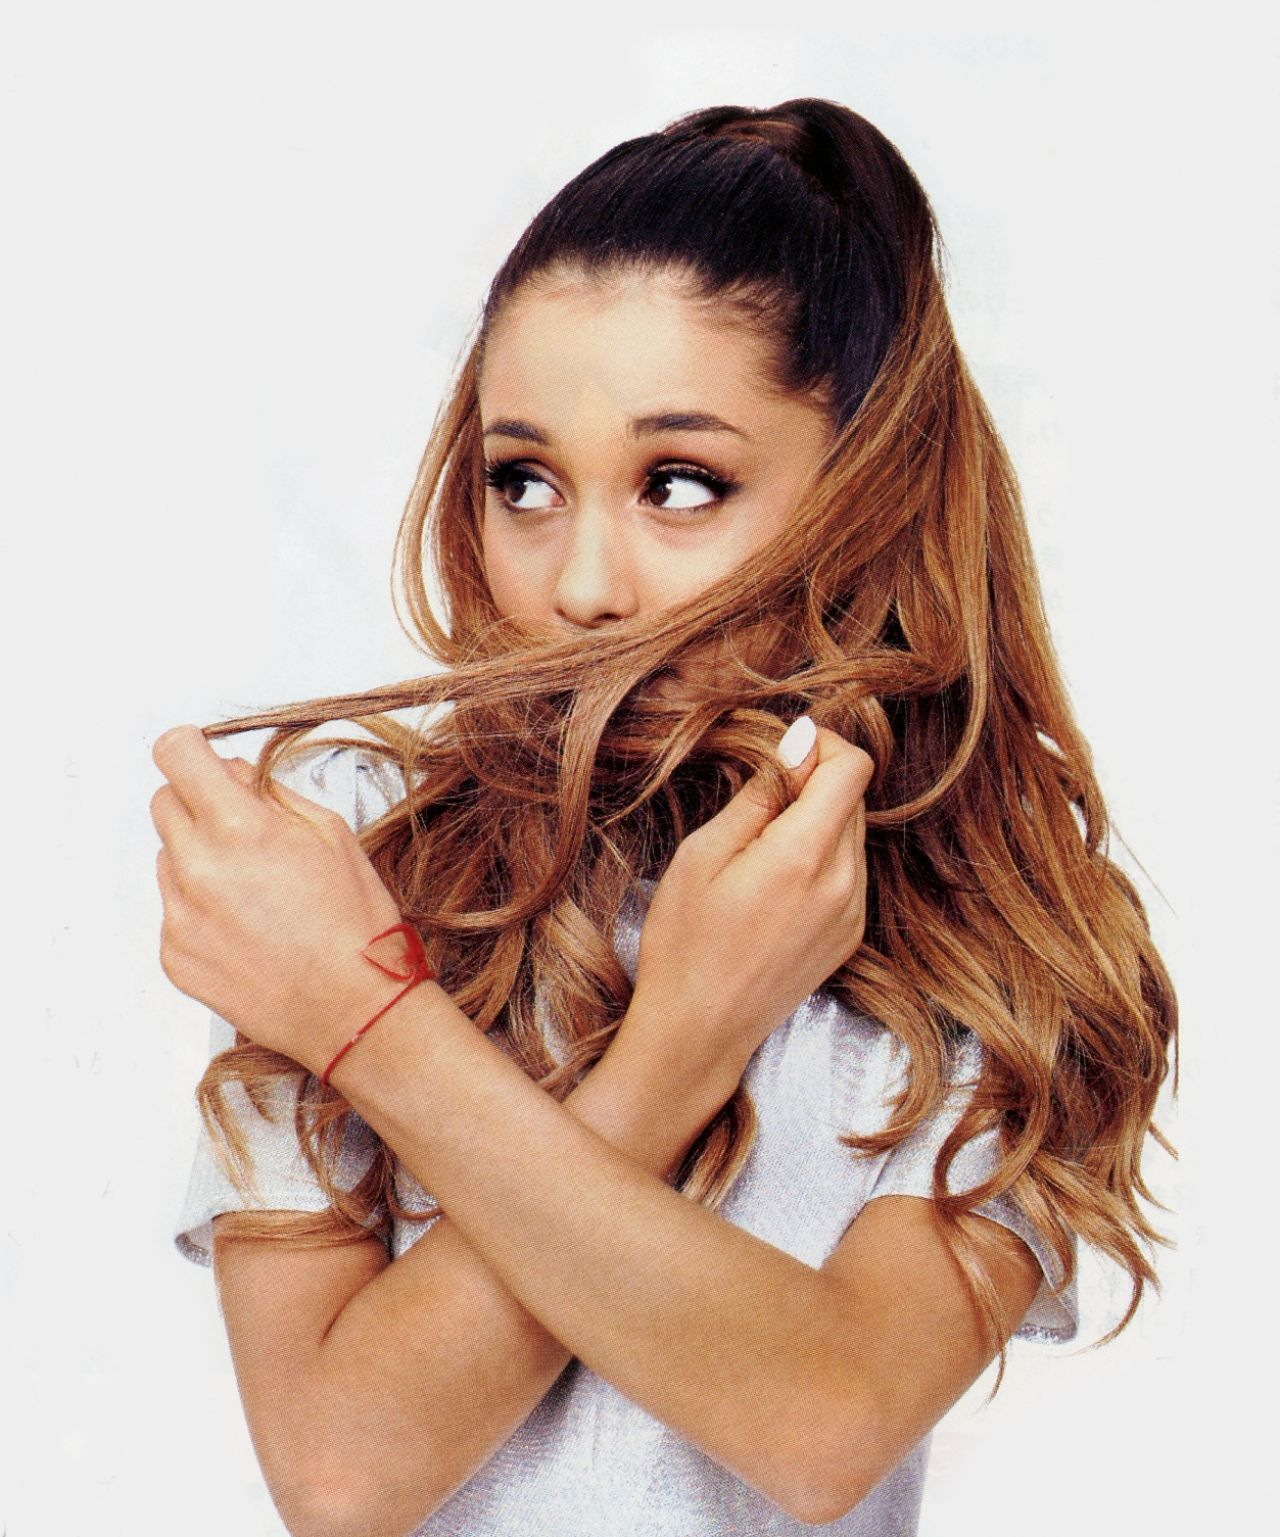 Ariana grande iphone sexy wallpapers voltagebd Image collections